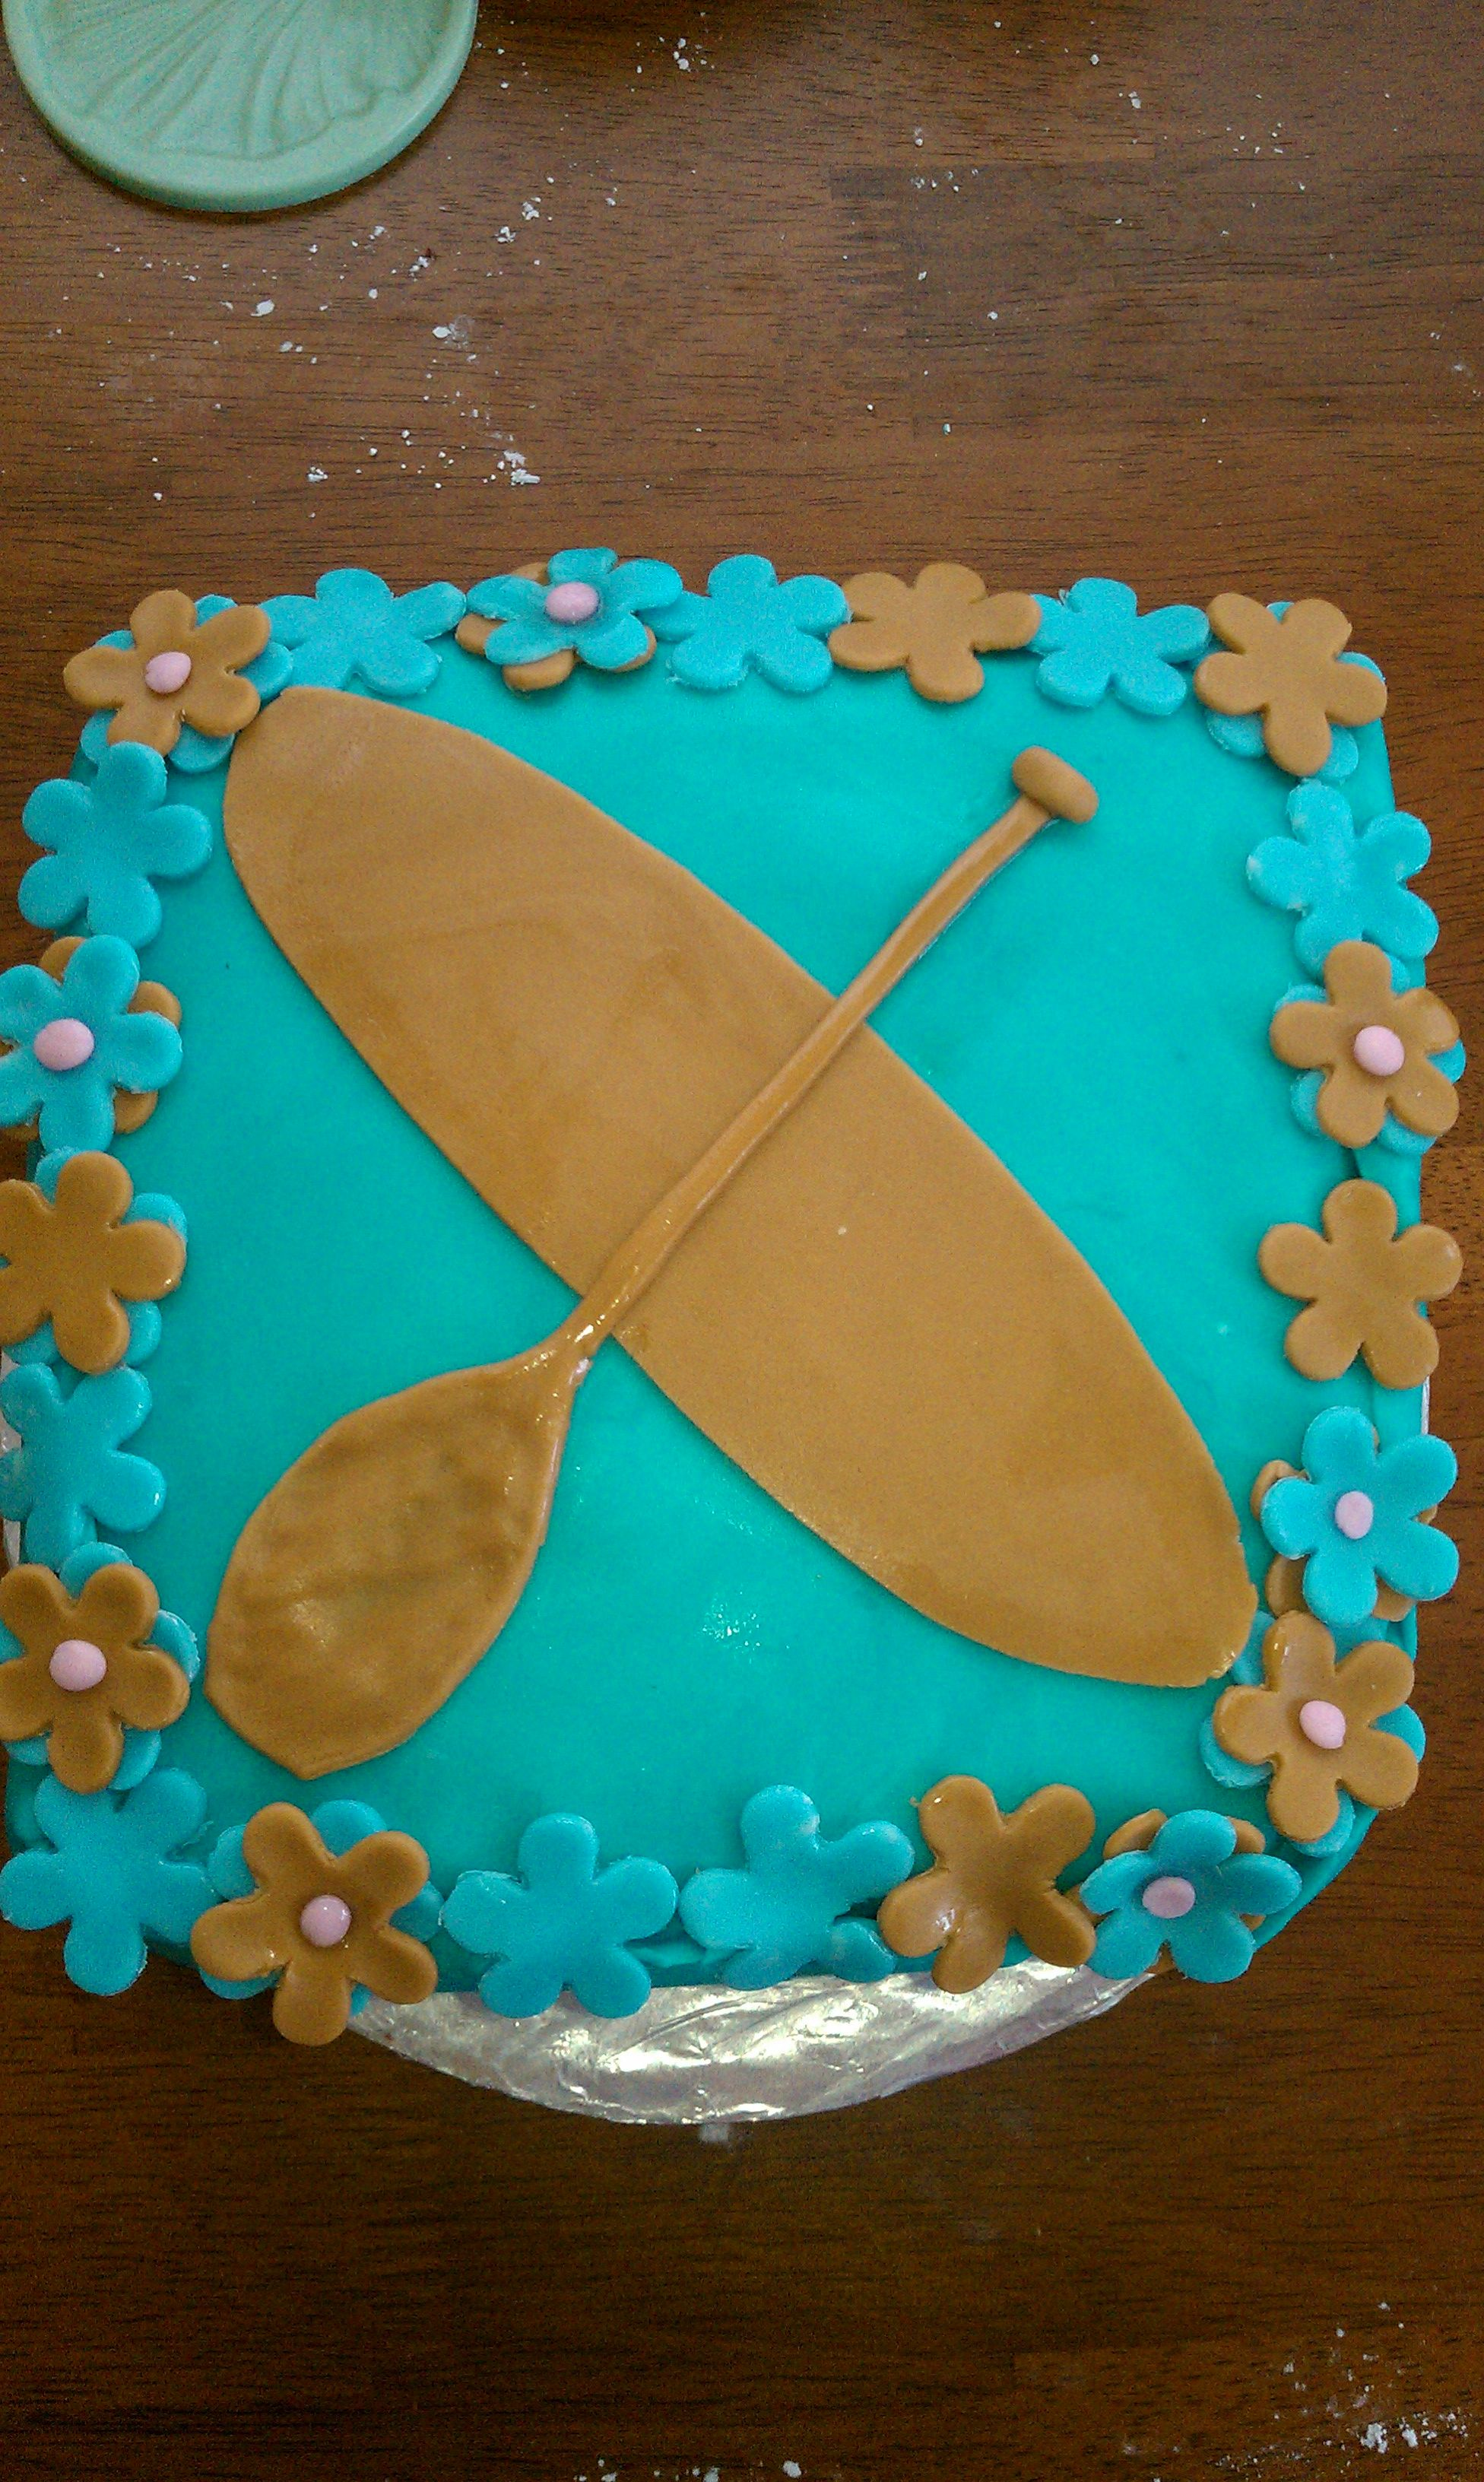 Stand up paddle board ornament - Paddle Board Birthday Cake